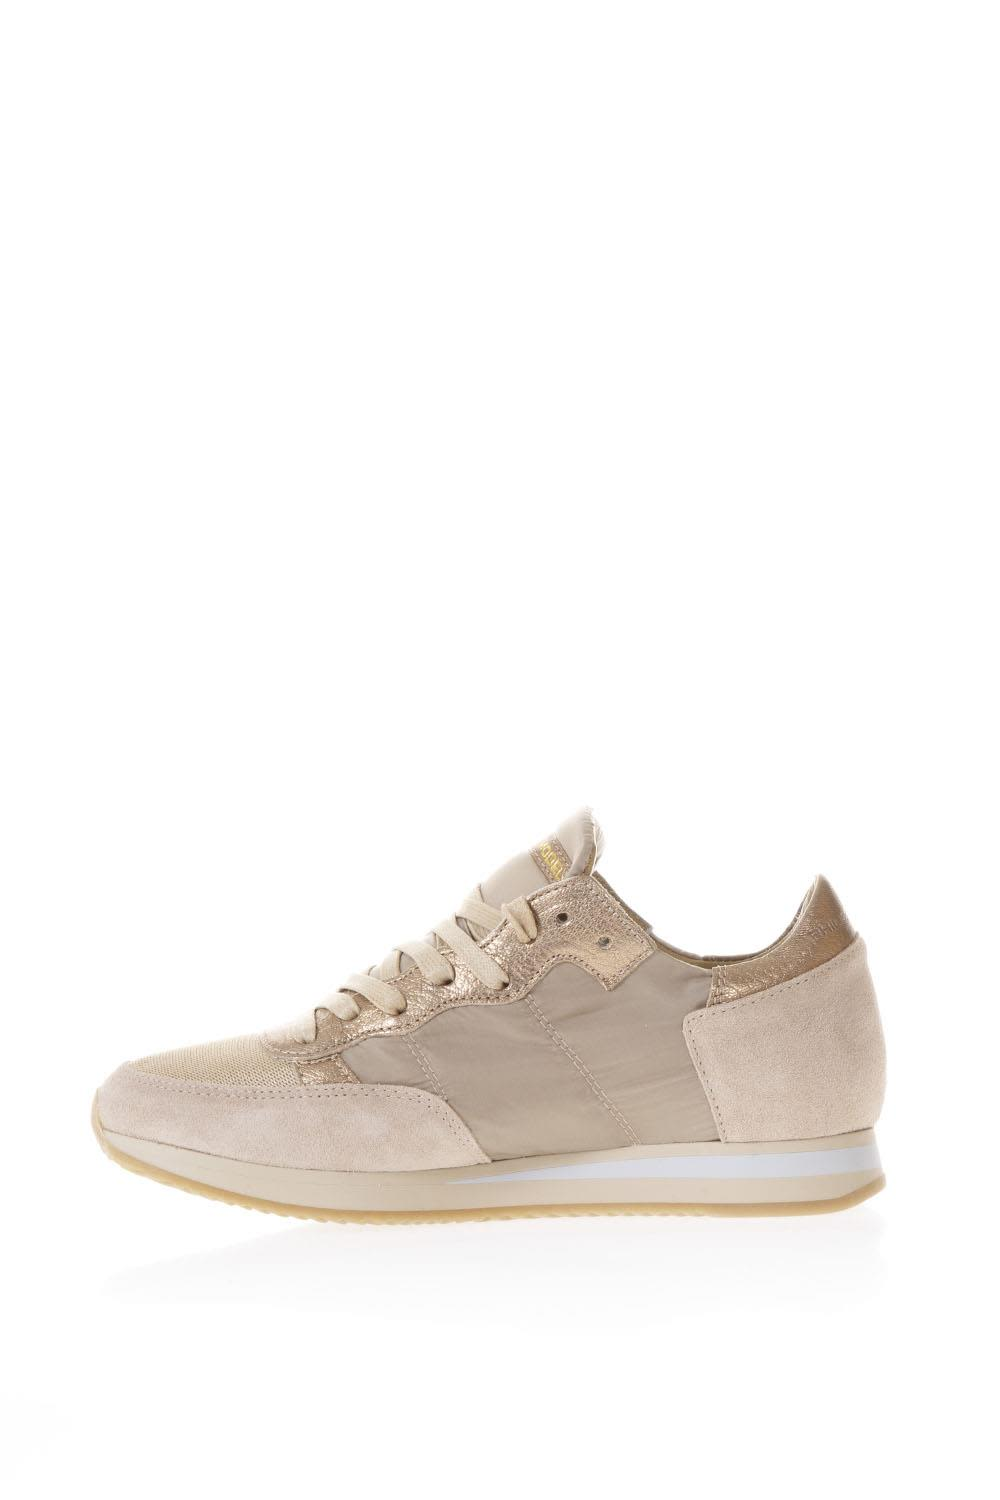 The Cheapest Cheap Online Philippe model Tropez Nuts Suede & Nylon Sneakers Buy Cheap Browse 4Nb0gzlFy